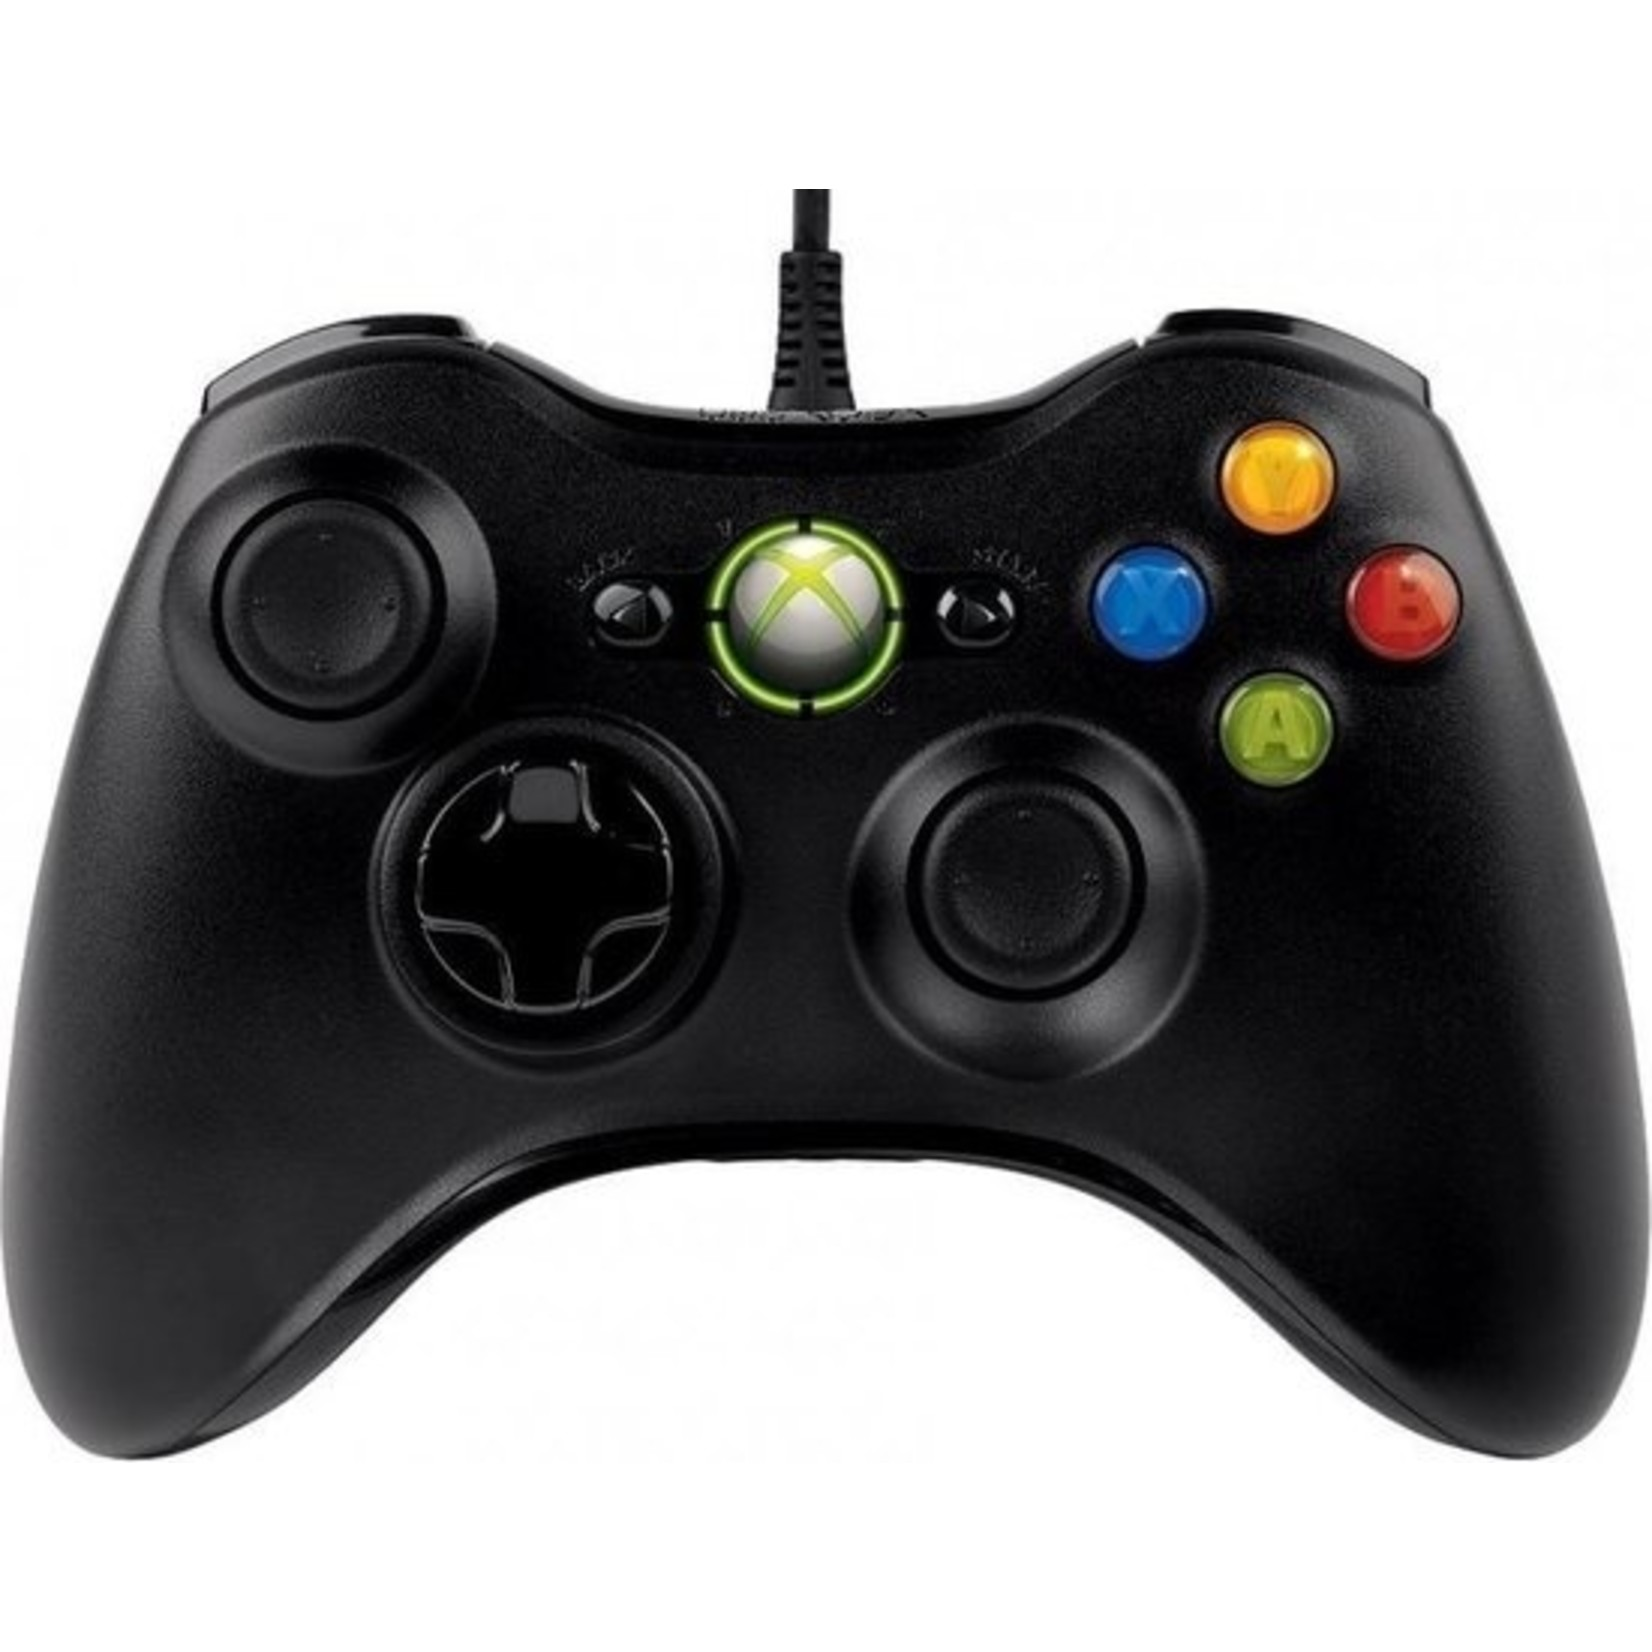 Microsoft Bedrade / Wired Xbox 360 Controller - Zwart